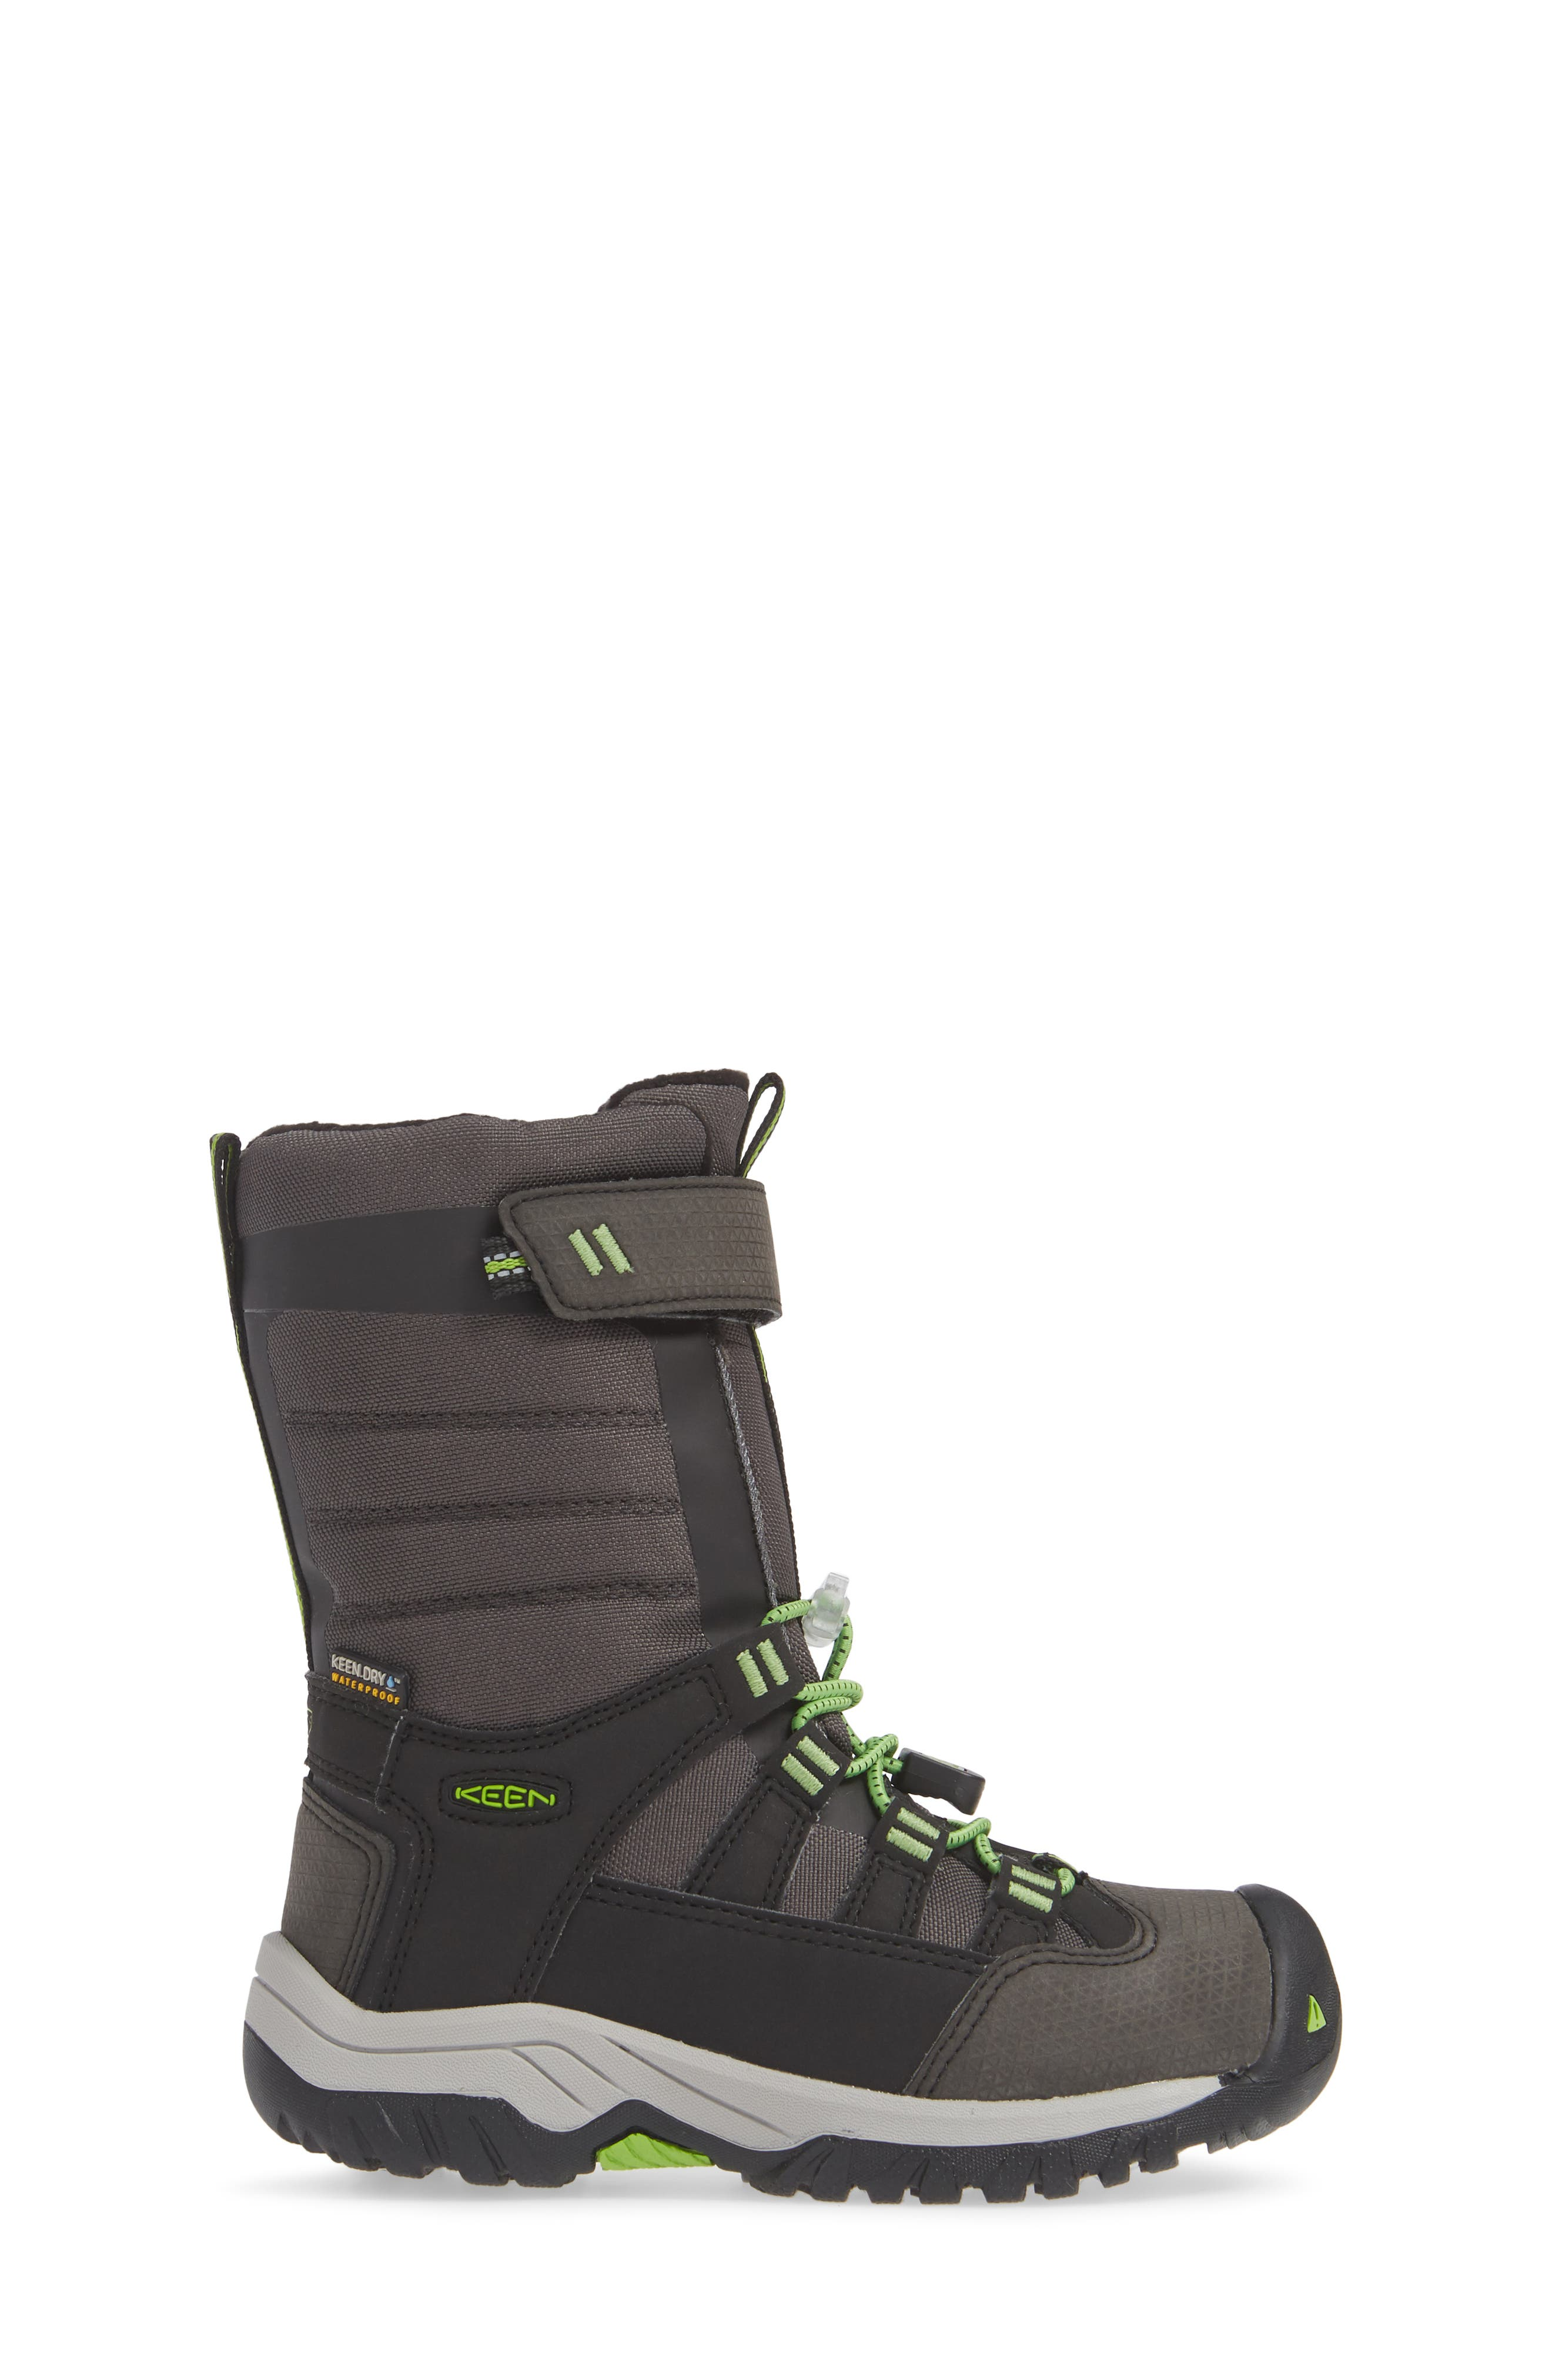 Winterport Neo Waterproof Insulated Boot,                             Alternate thumbnail 3, color,                             BLACK/ GREENERY